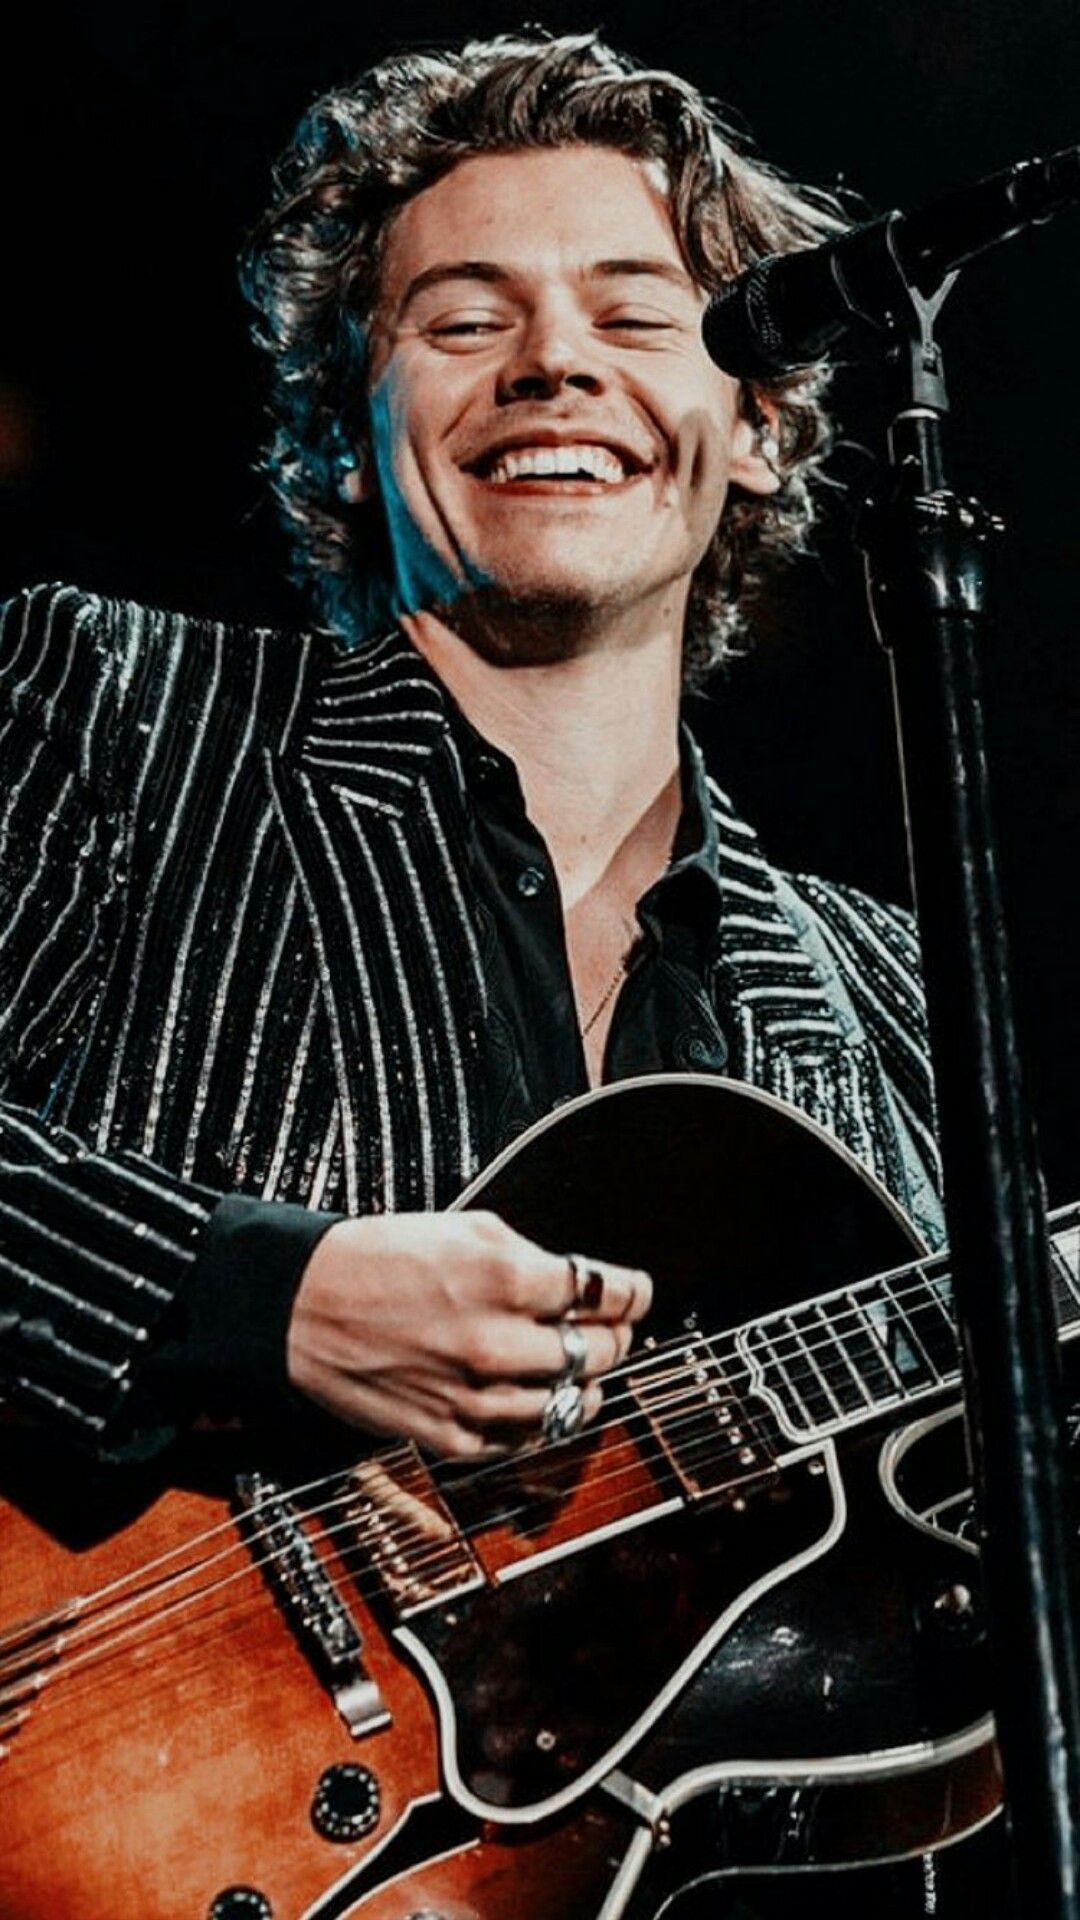 Harry Styles Wallpaper Iphone Kolpaper Awesome Free Hd Wallpapers